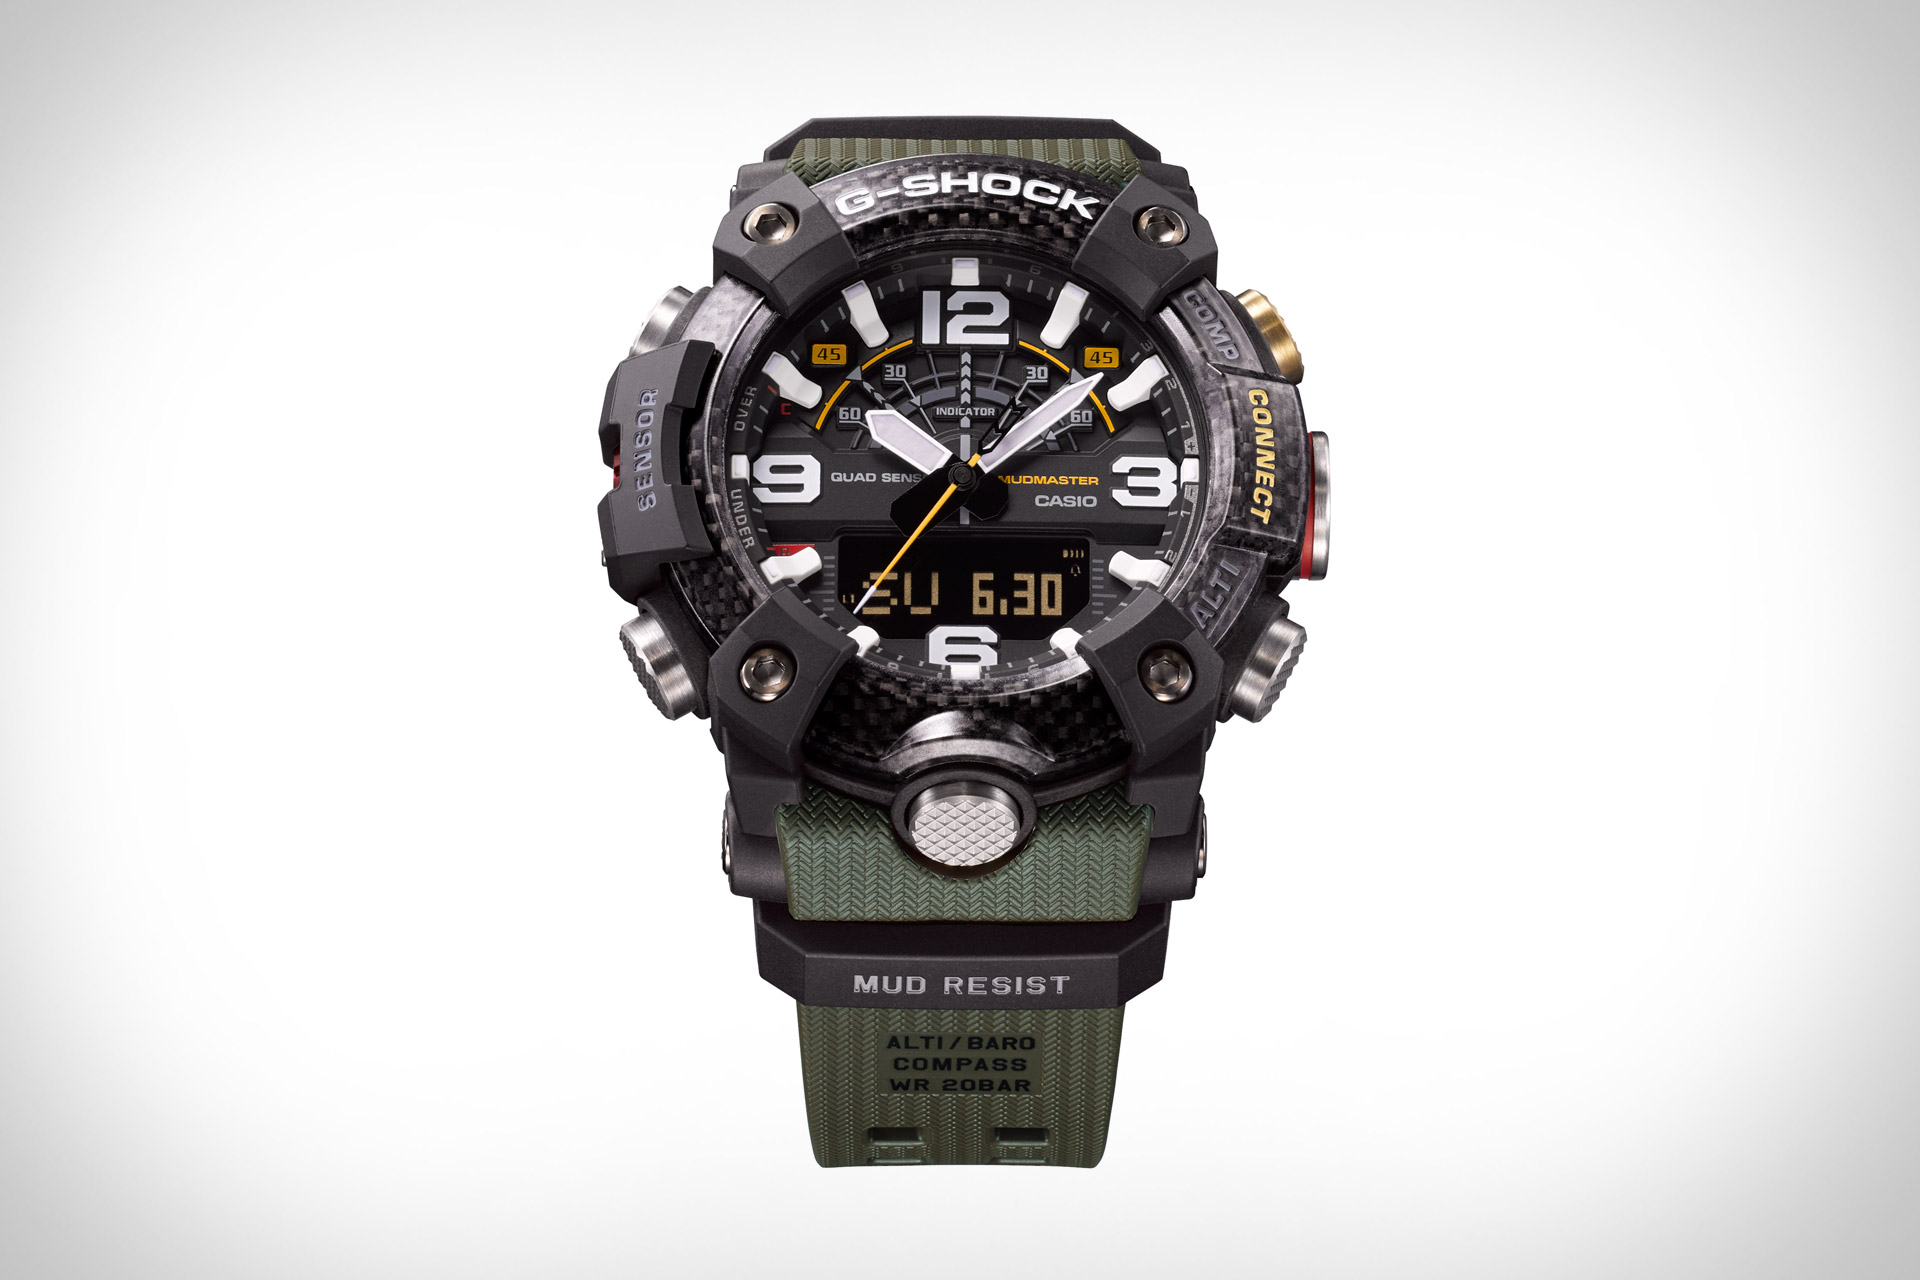 G-Shock Mudmaster Watch | Uncrate